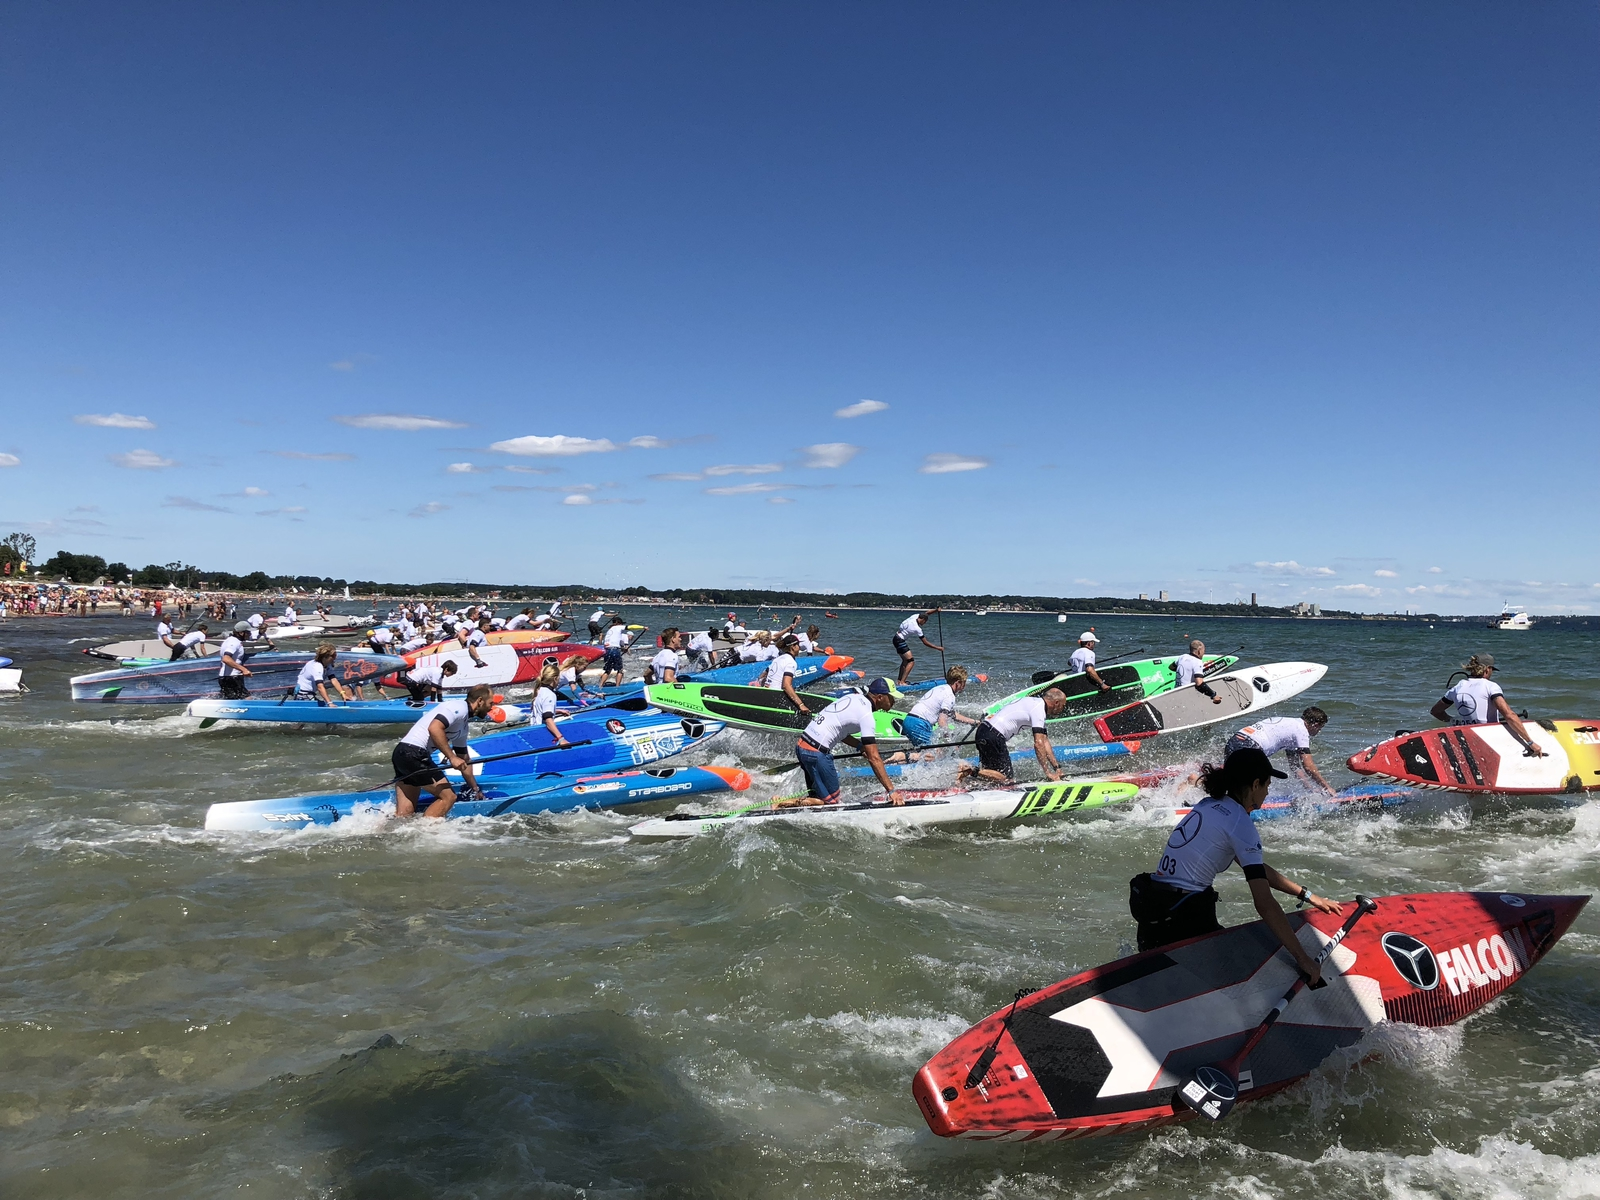 sup world cup scharbeutz 2018 - IMG_3543